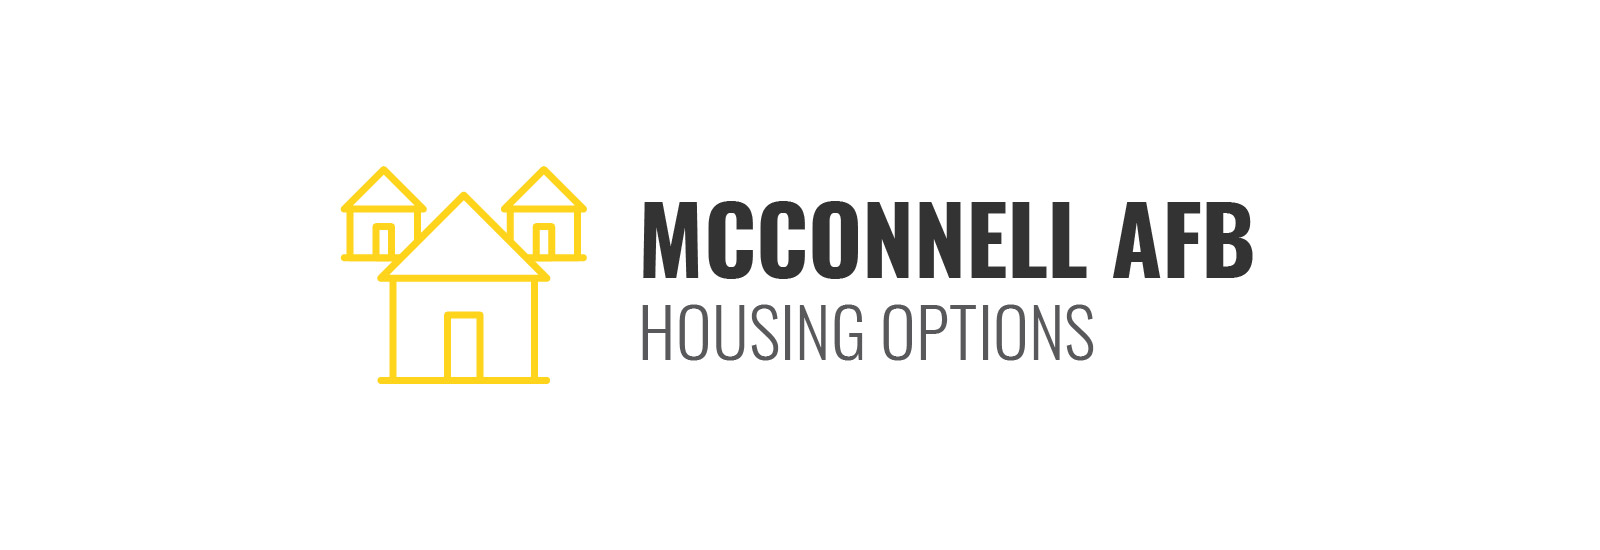 McConnell AFB Housing Options